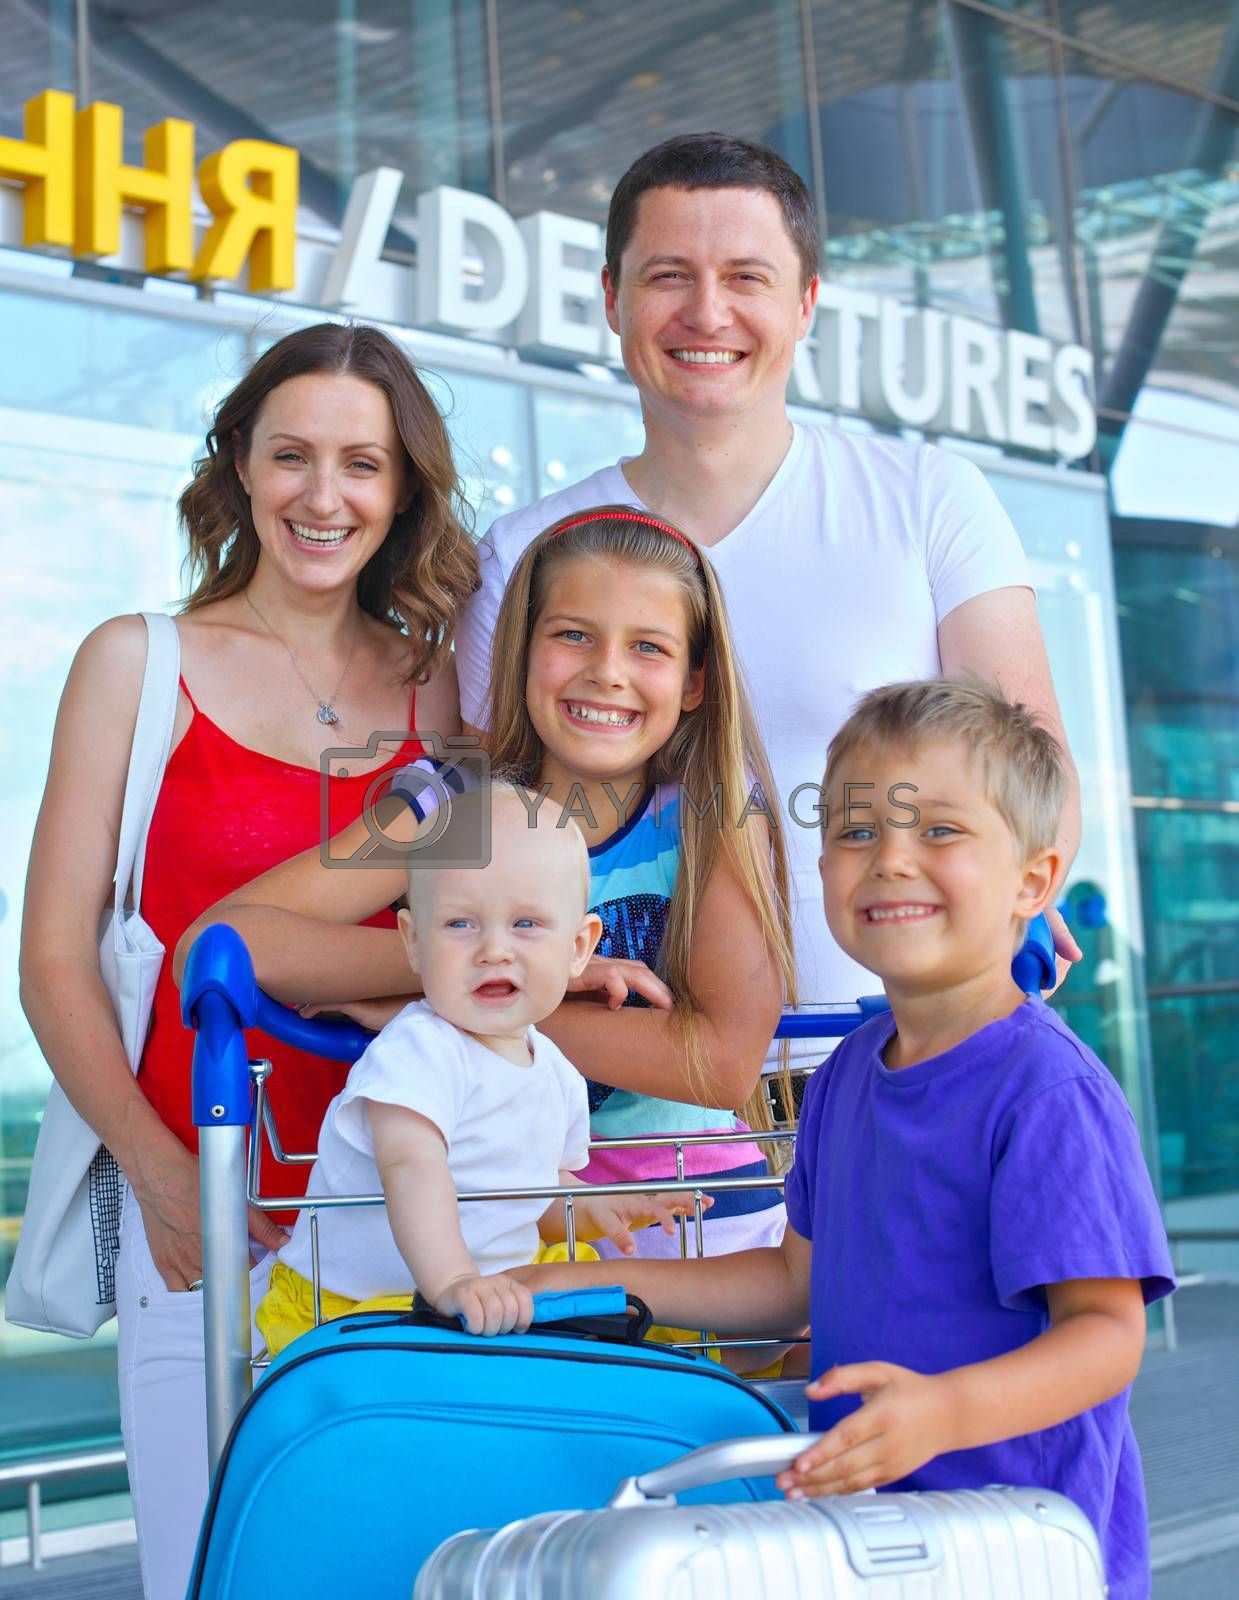 Portrait of traveling family of five with suitcases in airport